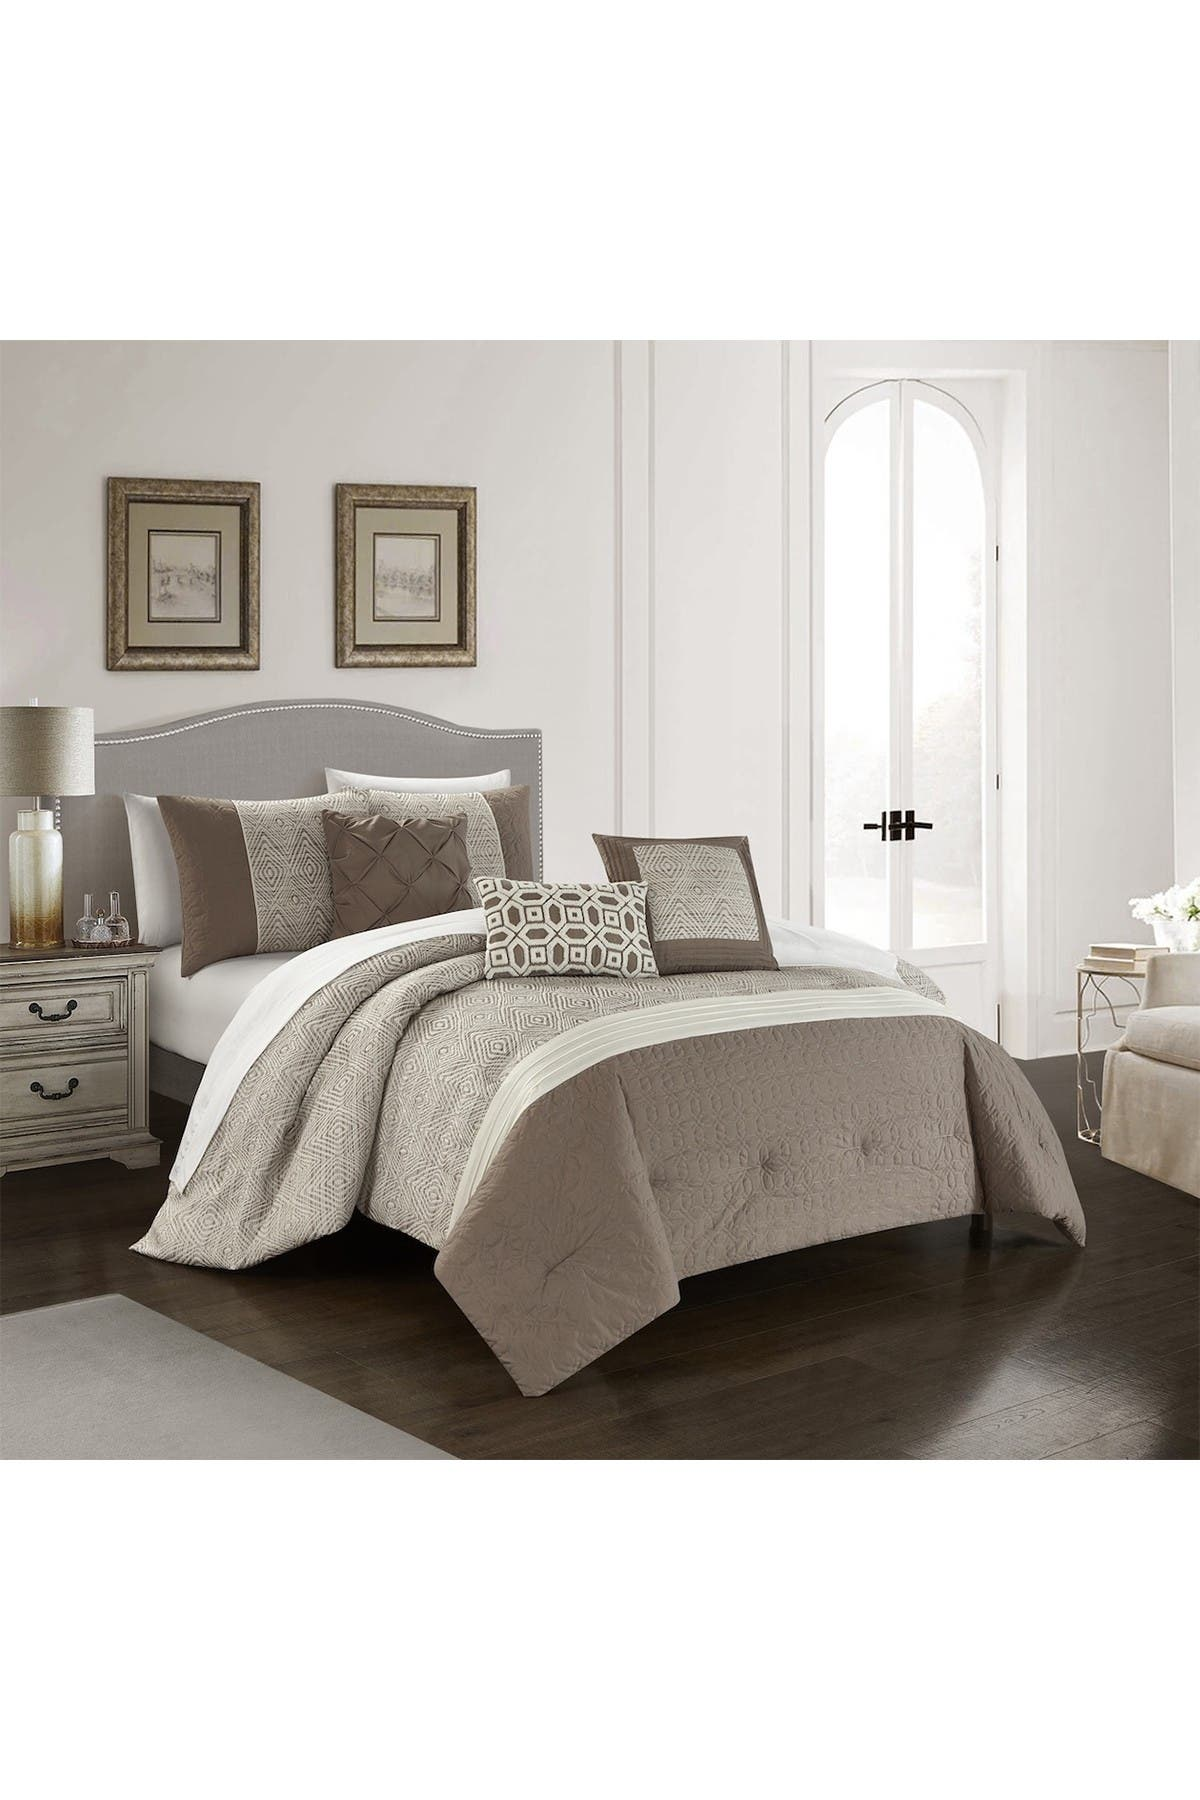 Image of Chic Home Bedding Imala Jacquard Geometric Pattern With Pleated And Quilted Details Queen Comforter Set - Beige - 6-Piece Set